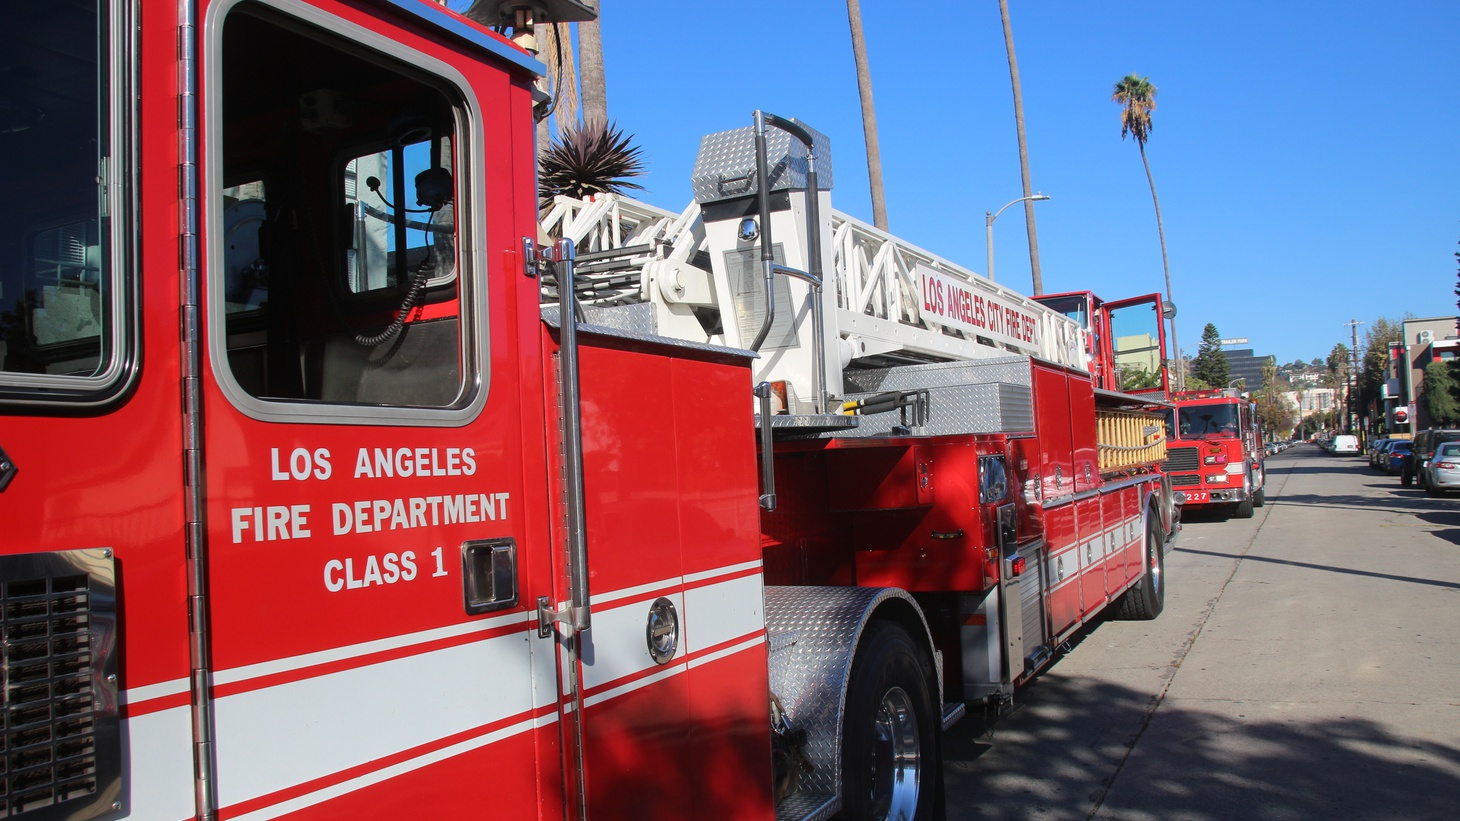 A Los Angeles Fire Department fire truck is seen near Hollywood Blvd. in downtown Los Angeles, California.